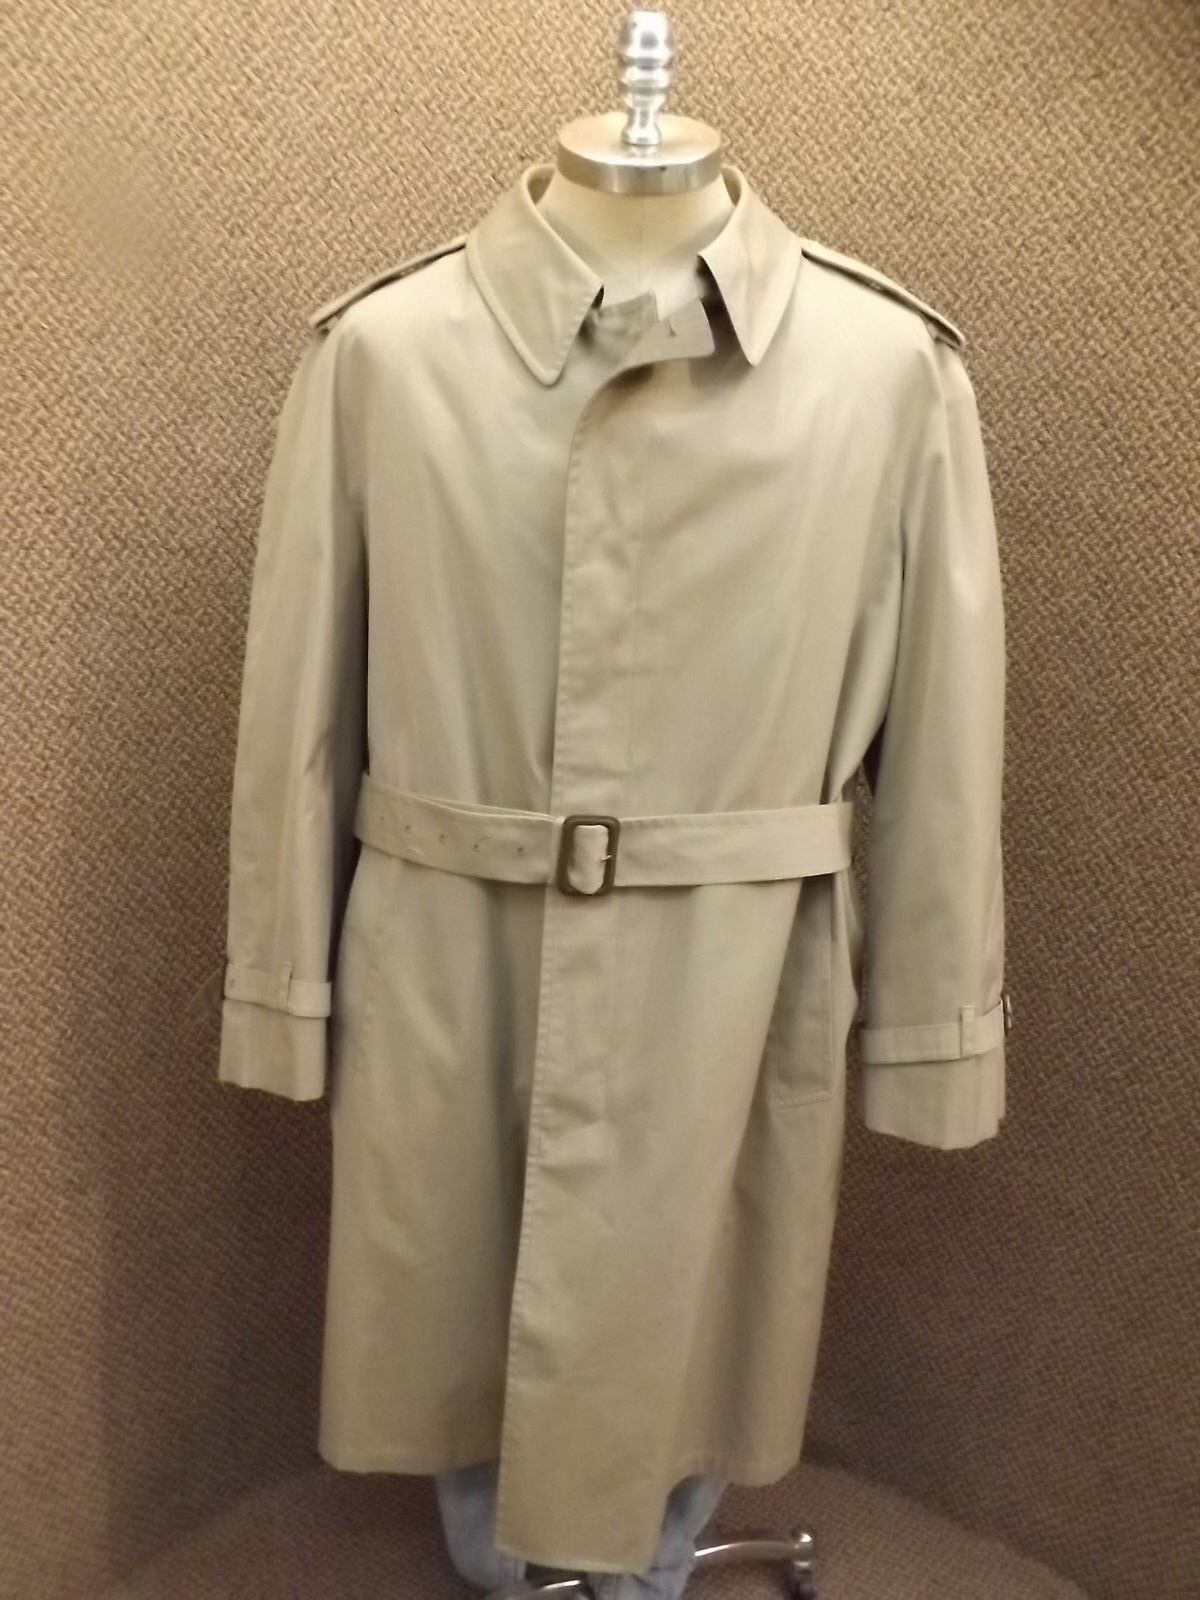 Classy Vintage London Fog Belted Spy Trench Coat Zip Out Quilted Lining Mens 46R